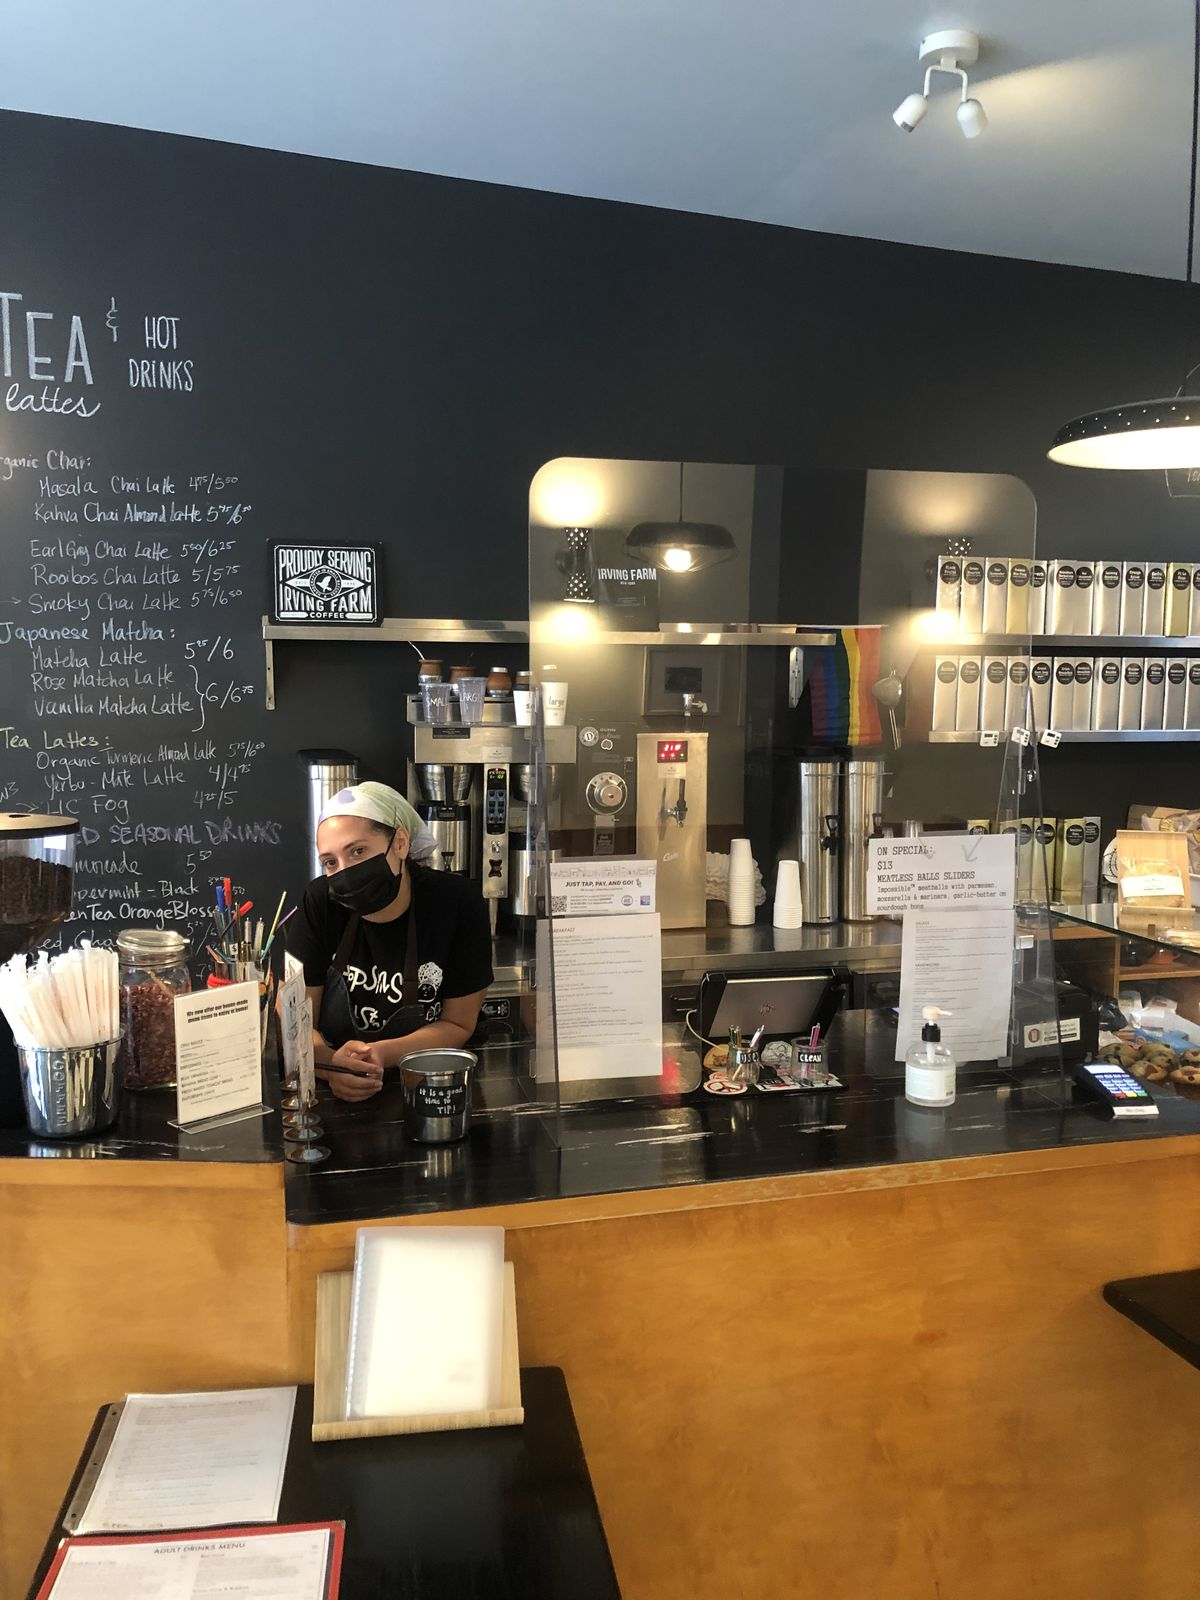 Inside a coffee shop with a counter and a server in a mask standing behind it